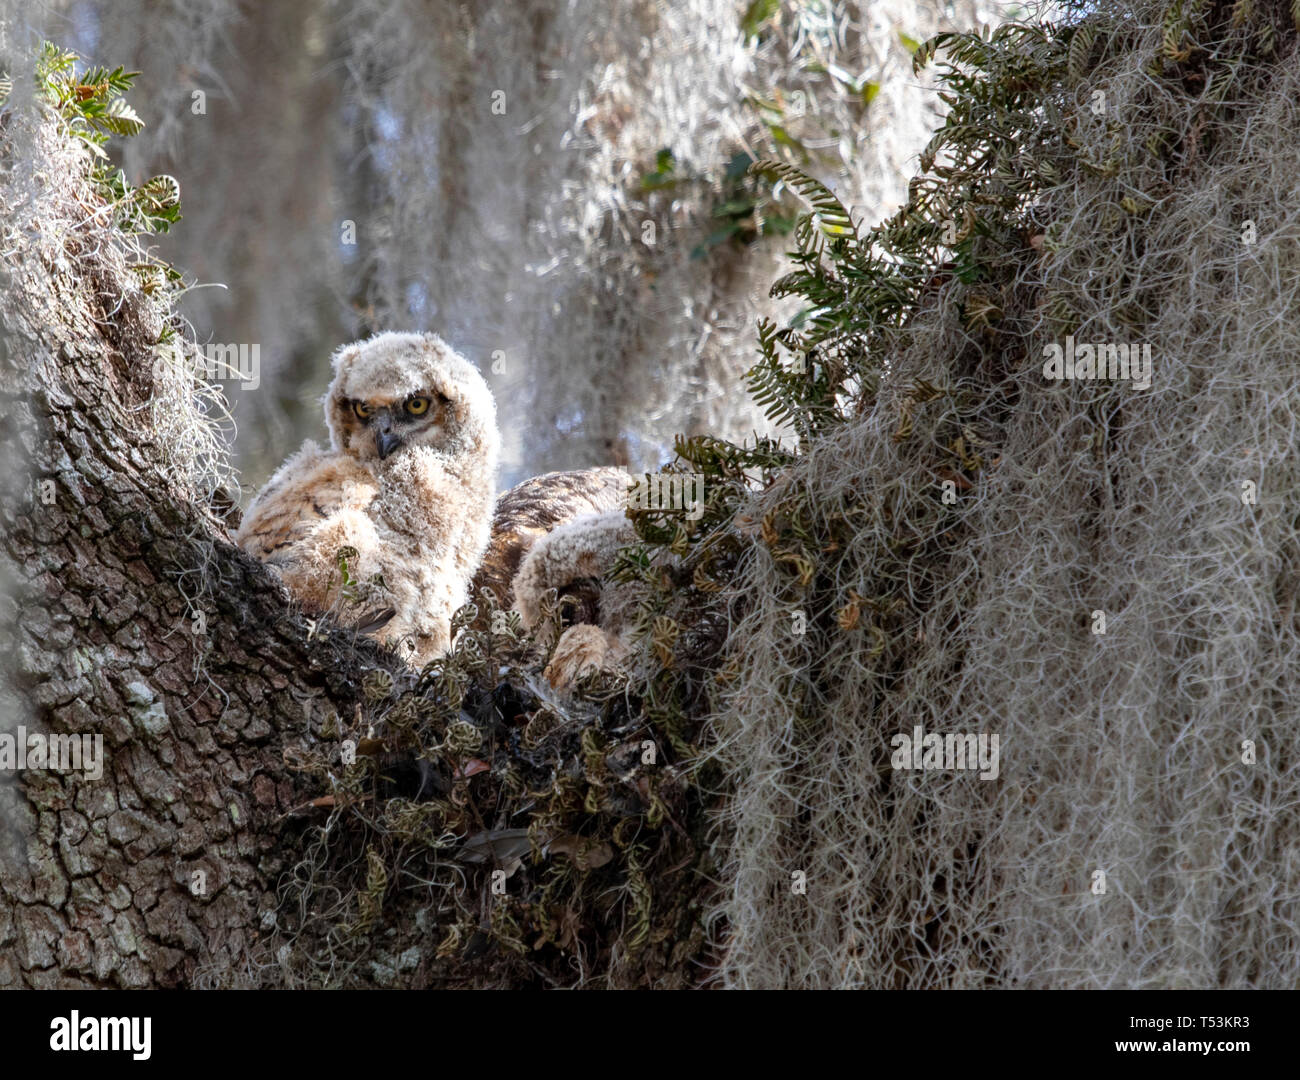 Hidden in the Spanish moss in the huge trees along the La chua trail in Gainesville, Florida was a family of Great Horned owls - Stock Image